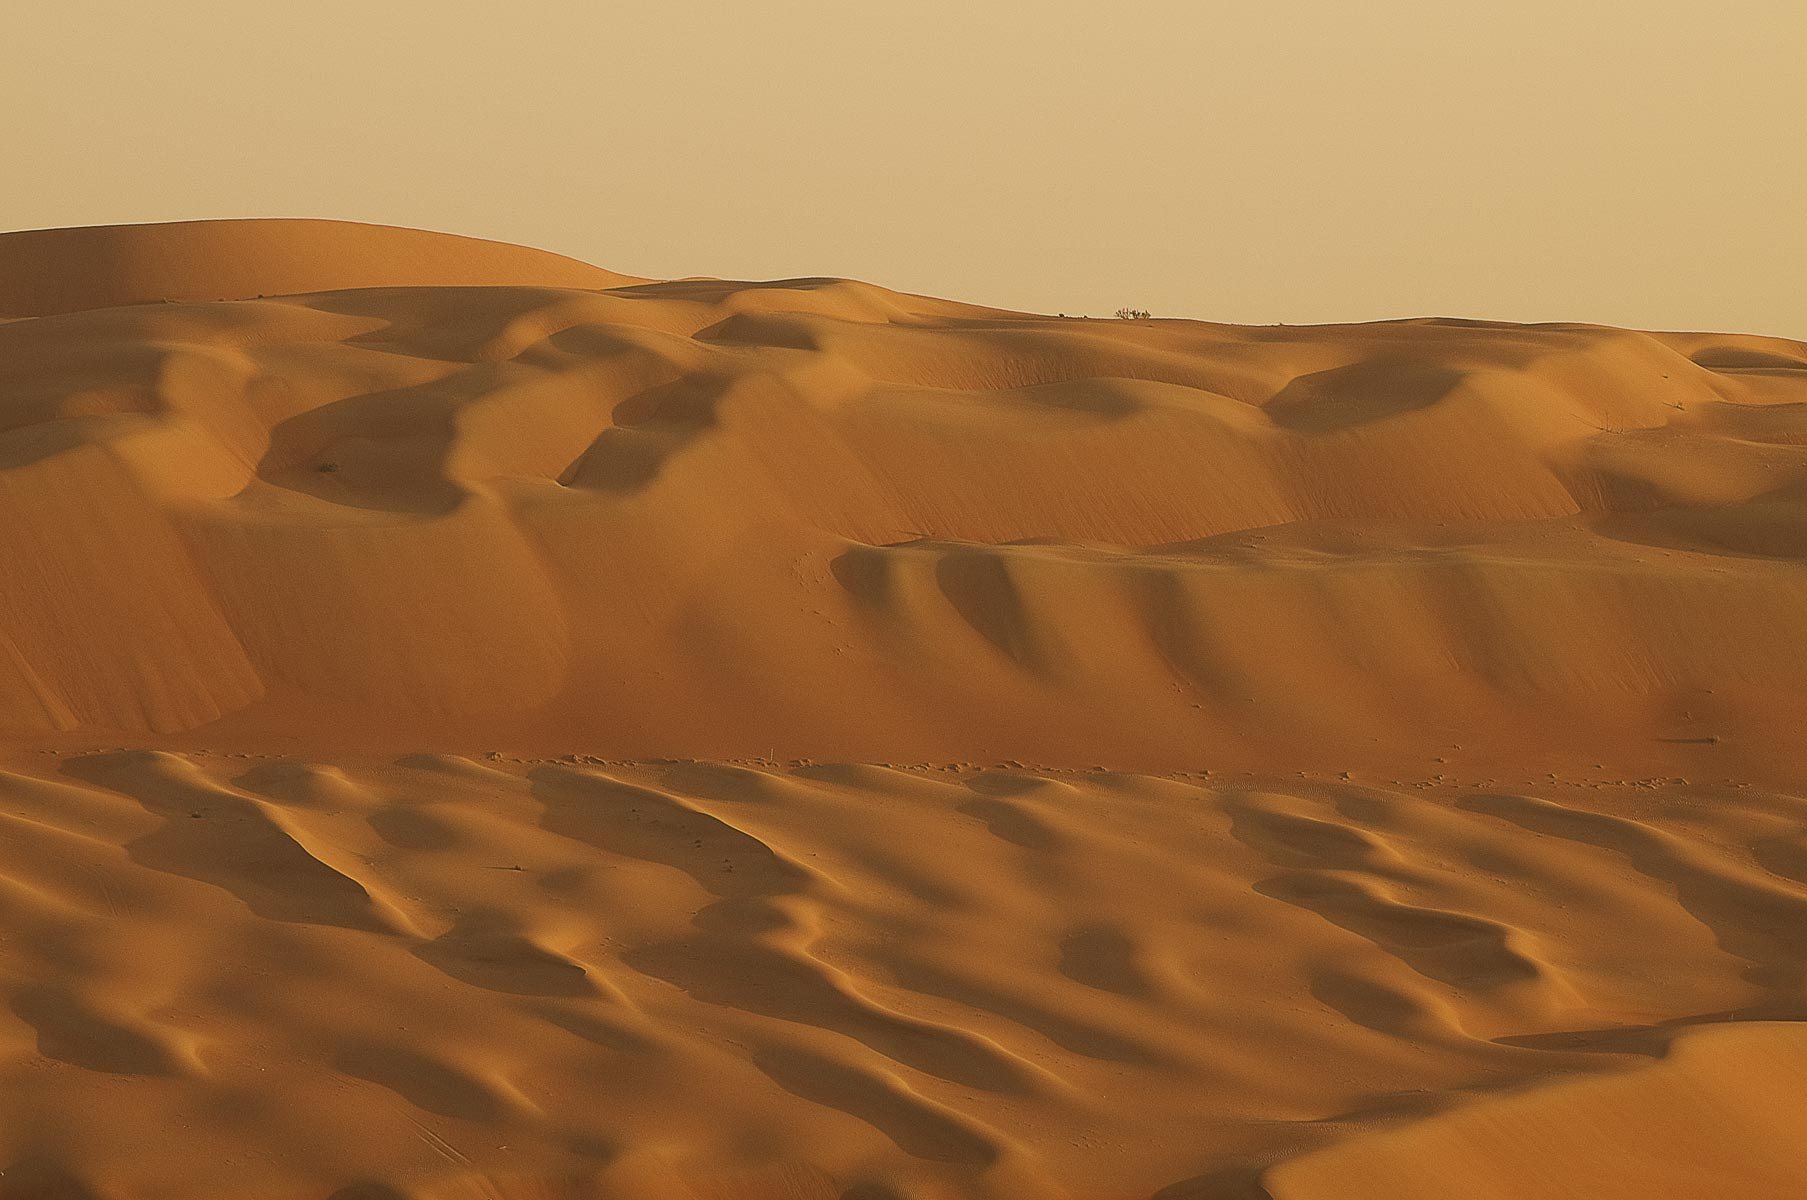 3-Saudi-Arabia-Empty-Quarter-Dunes-1024new